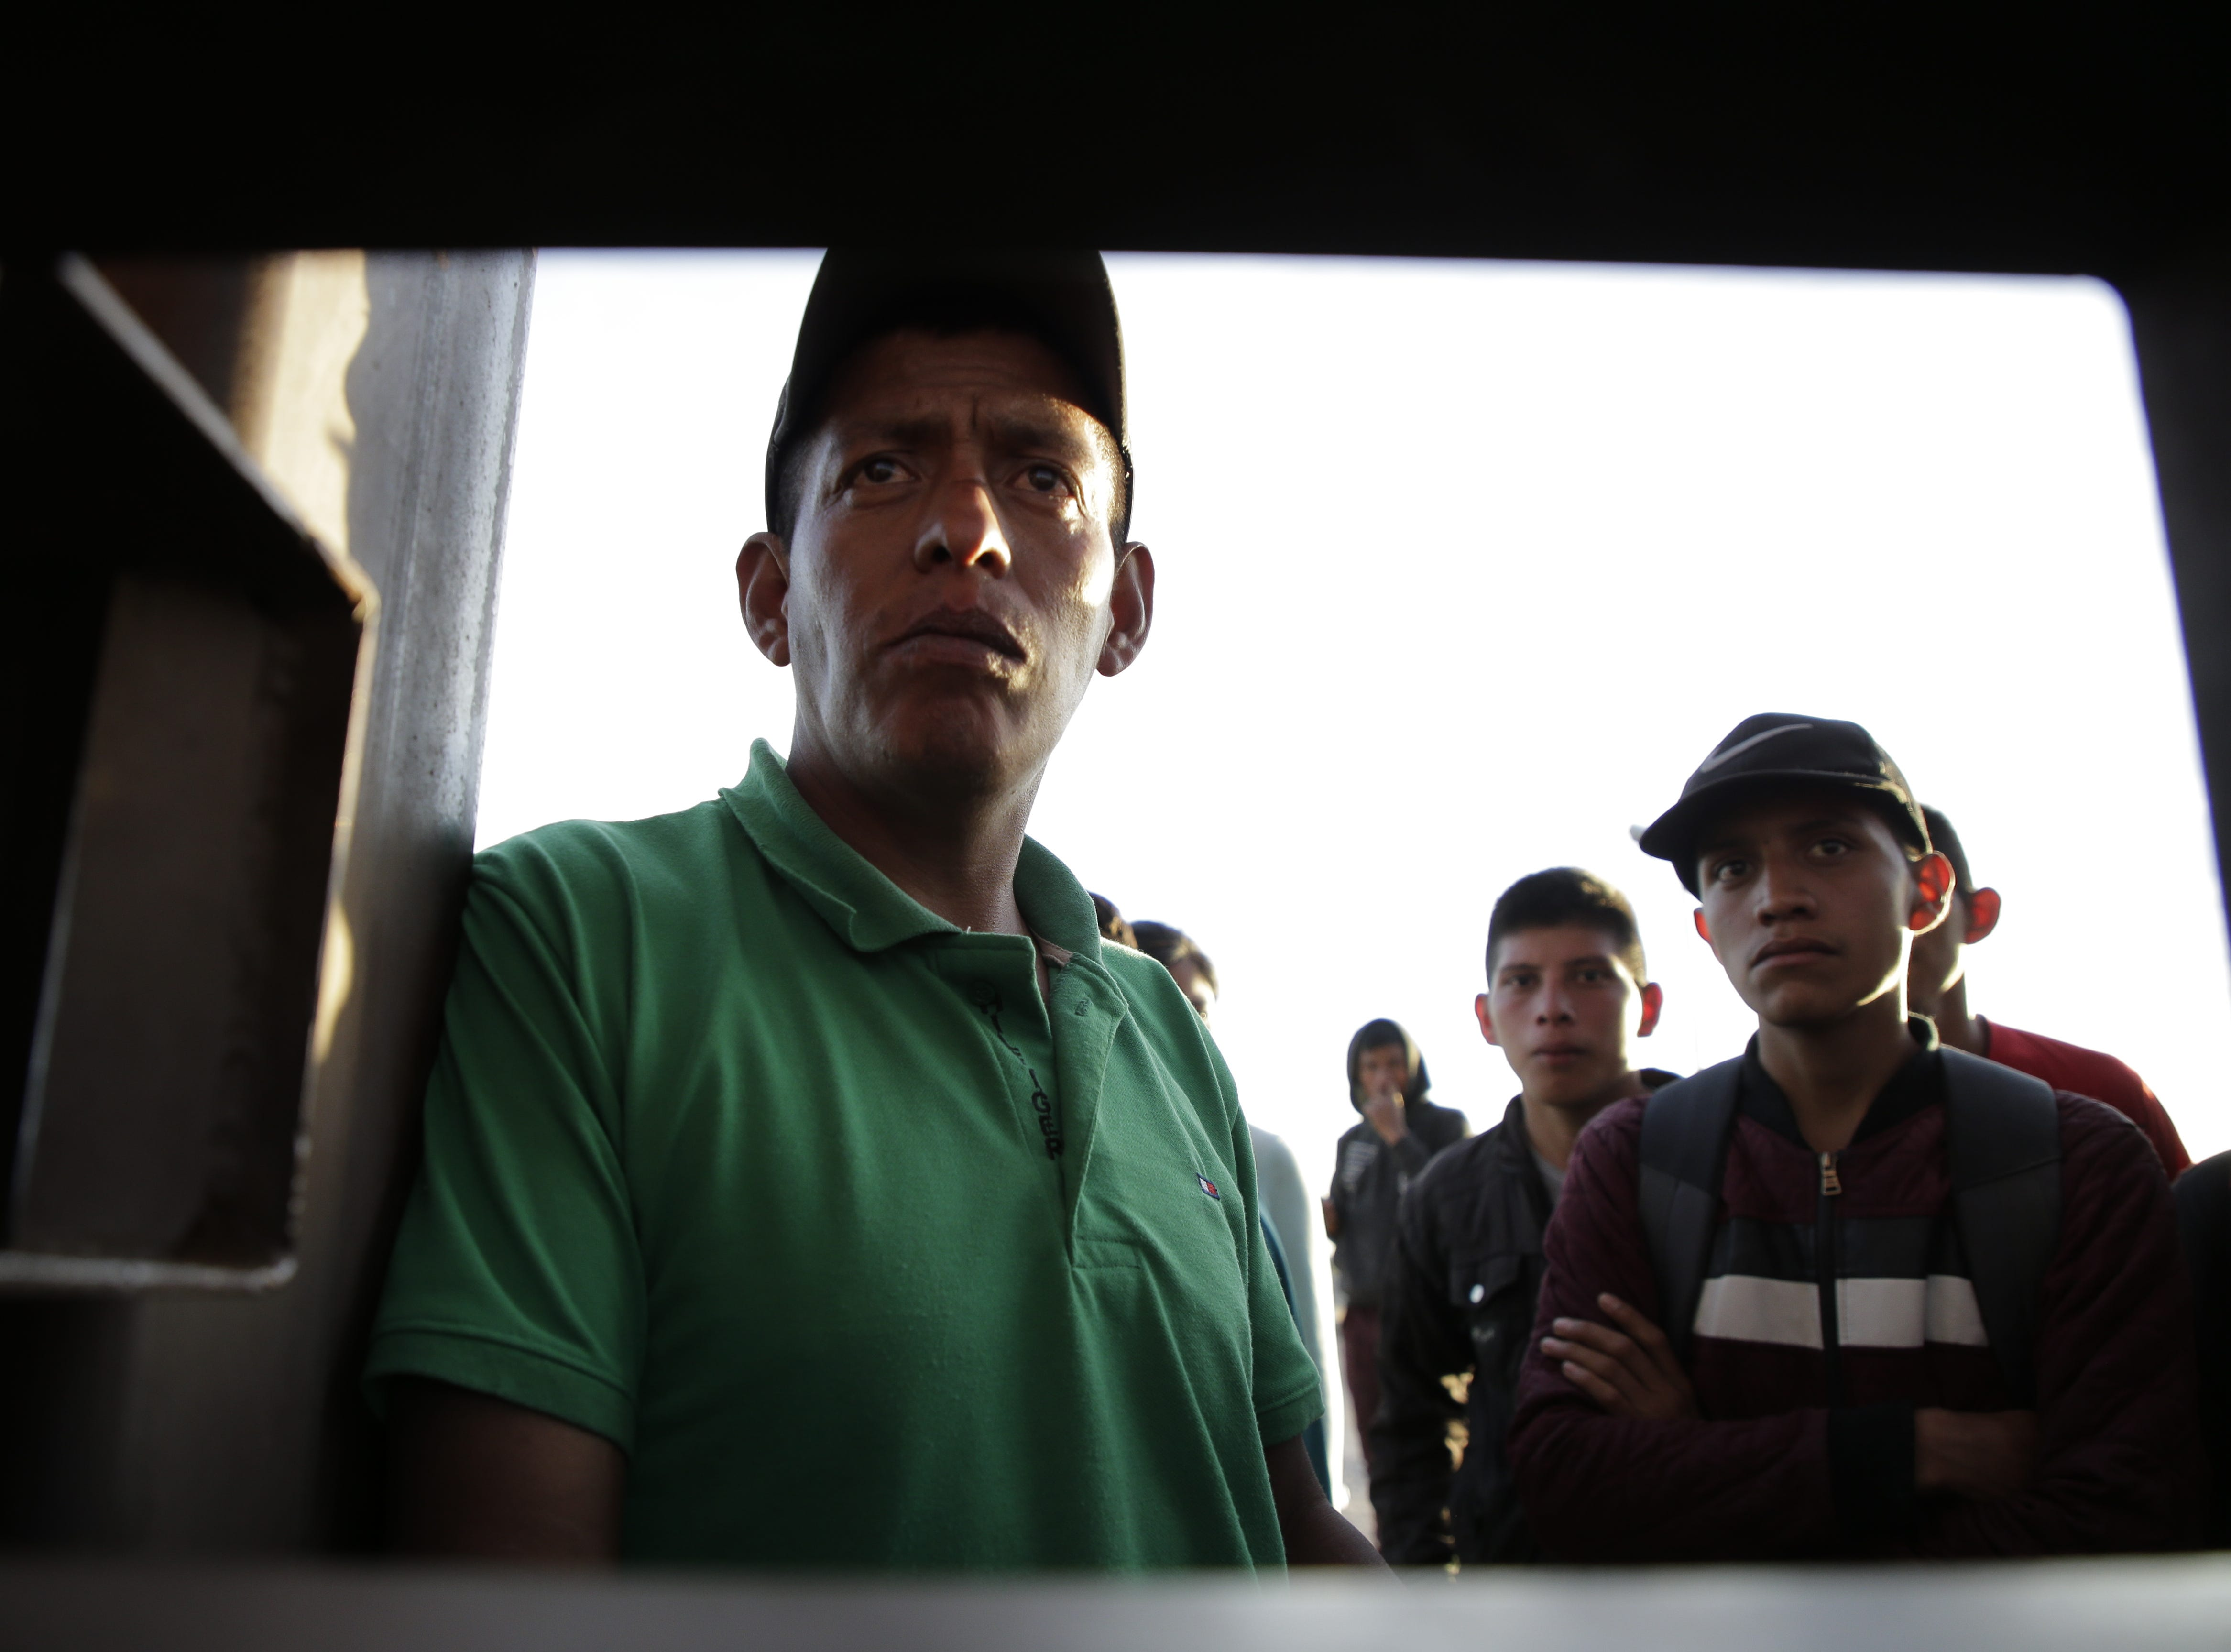 Gerardo, who asked not to share his full name, traveled to the U.S.-Mexico border in 20 days from Guatemala.